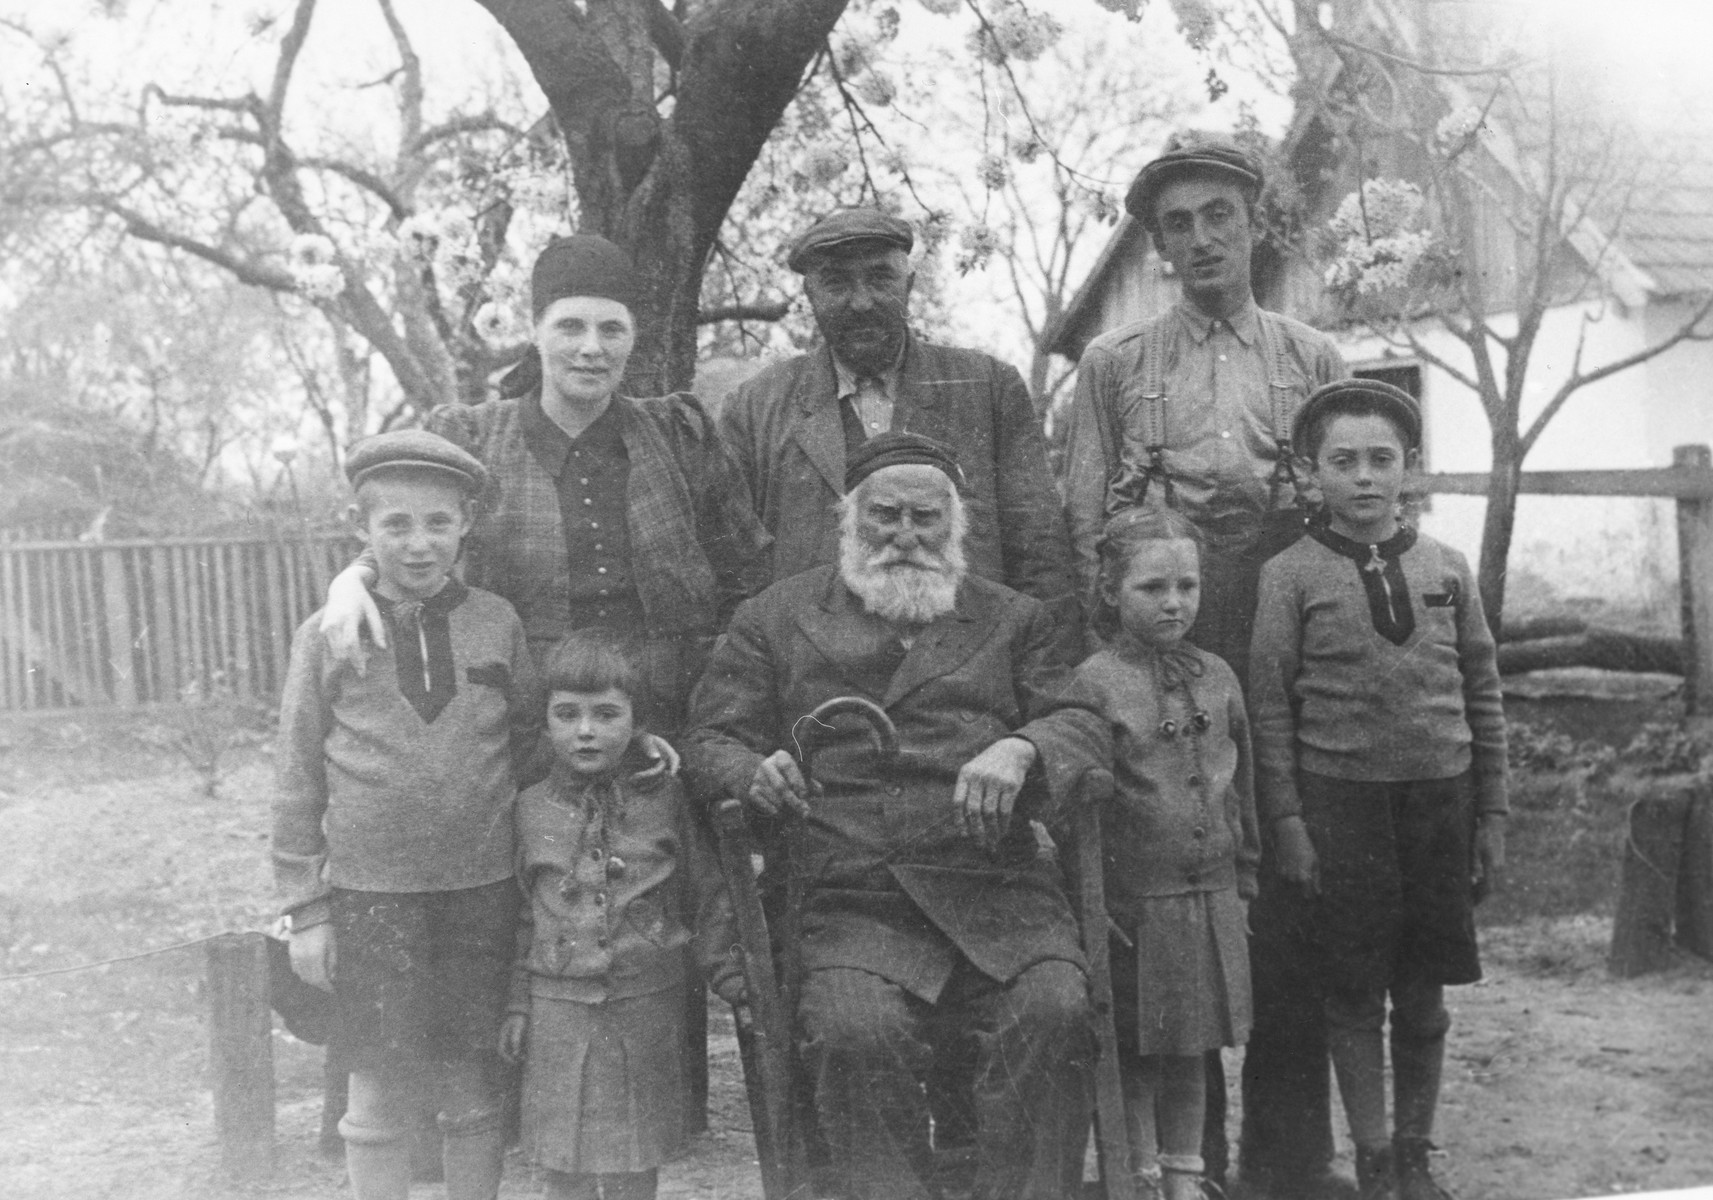 The Farkas family poses in the backyard for a family portrait taken by a visiting uncle from America.  Pictured front row (left to right): Zoltan Farkas, Judit Farkas, Yaakov Koppel Farkas, Eva Farkas and Erwin Farkas.  Back row: Frieda Frankel, Jeno Farkas and Sholom.